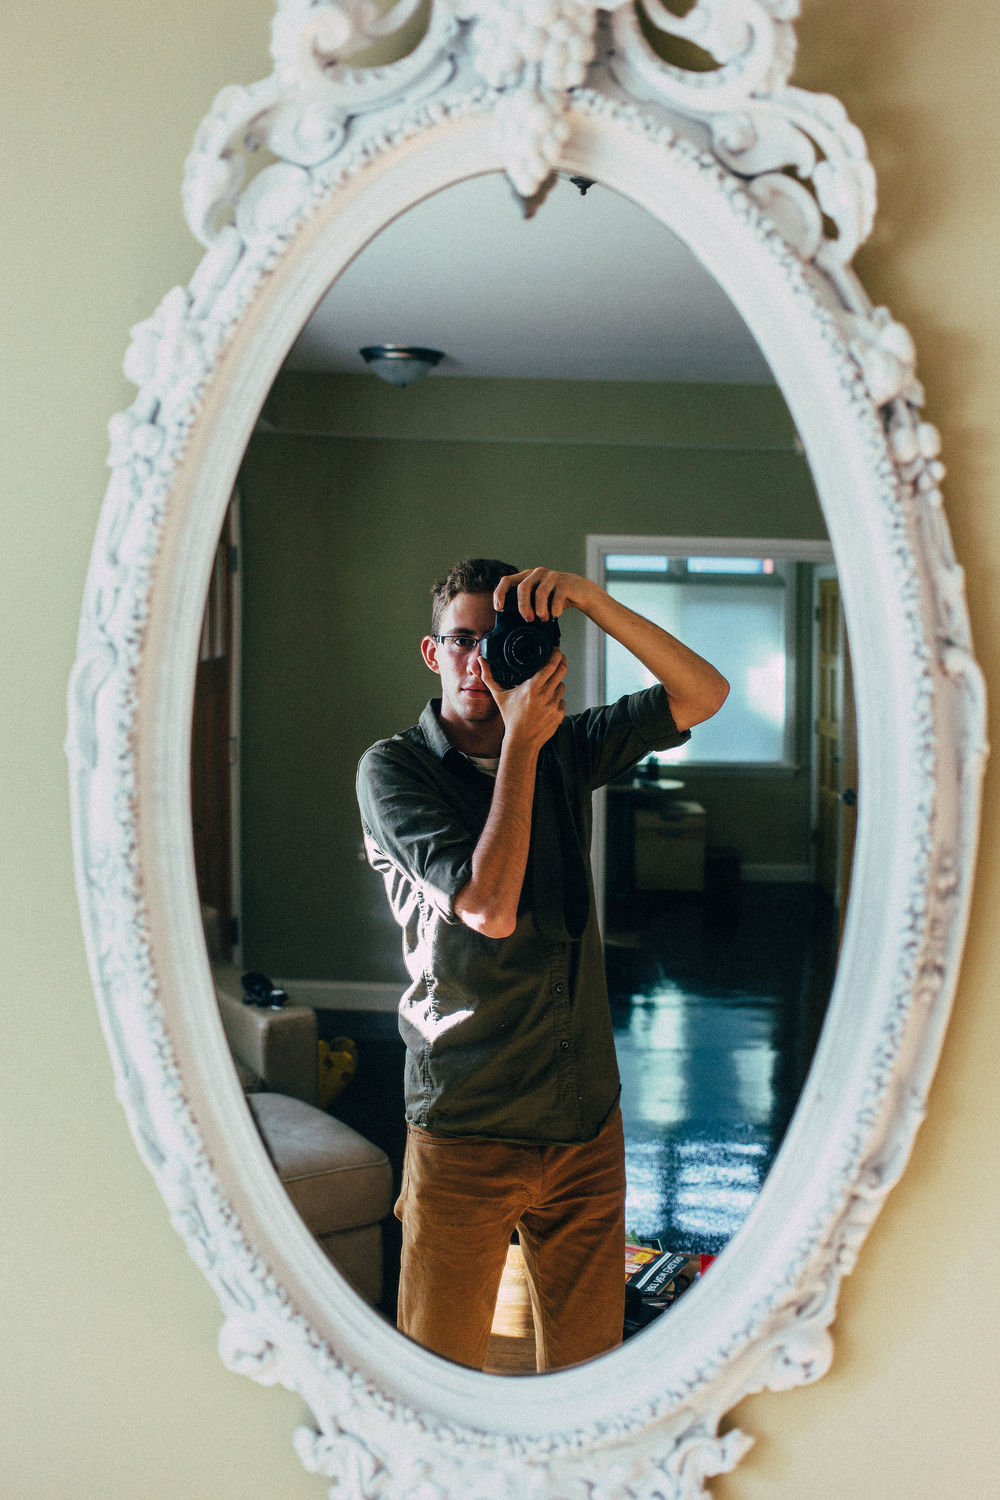 Self Portrait Parlor Mirror 9.28.2014.jpg